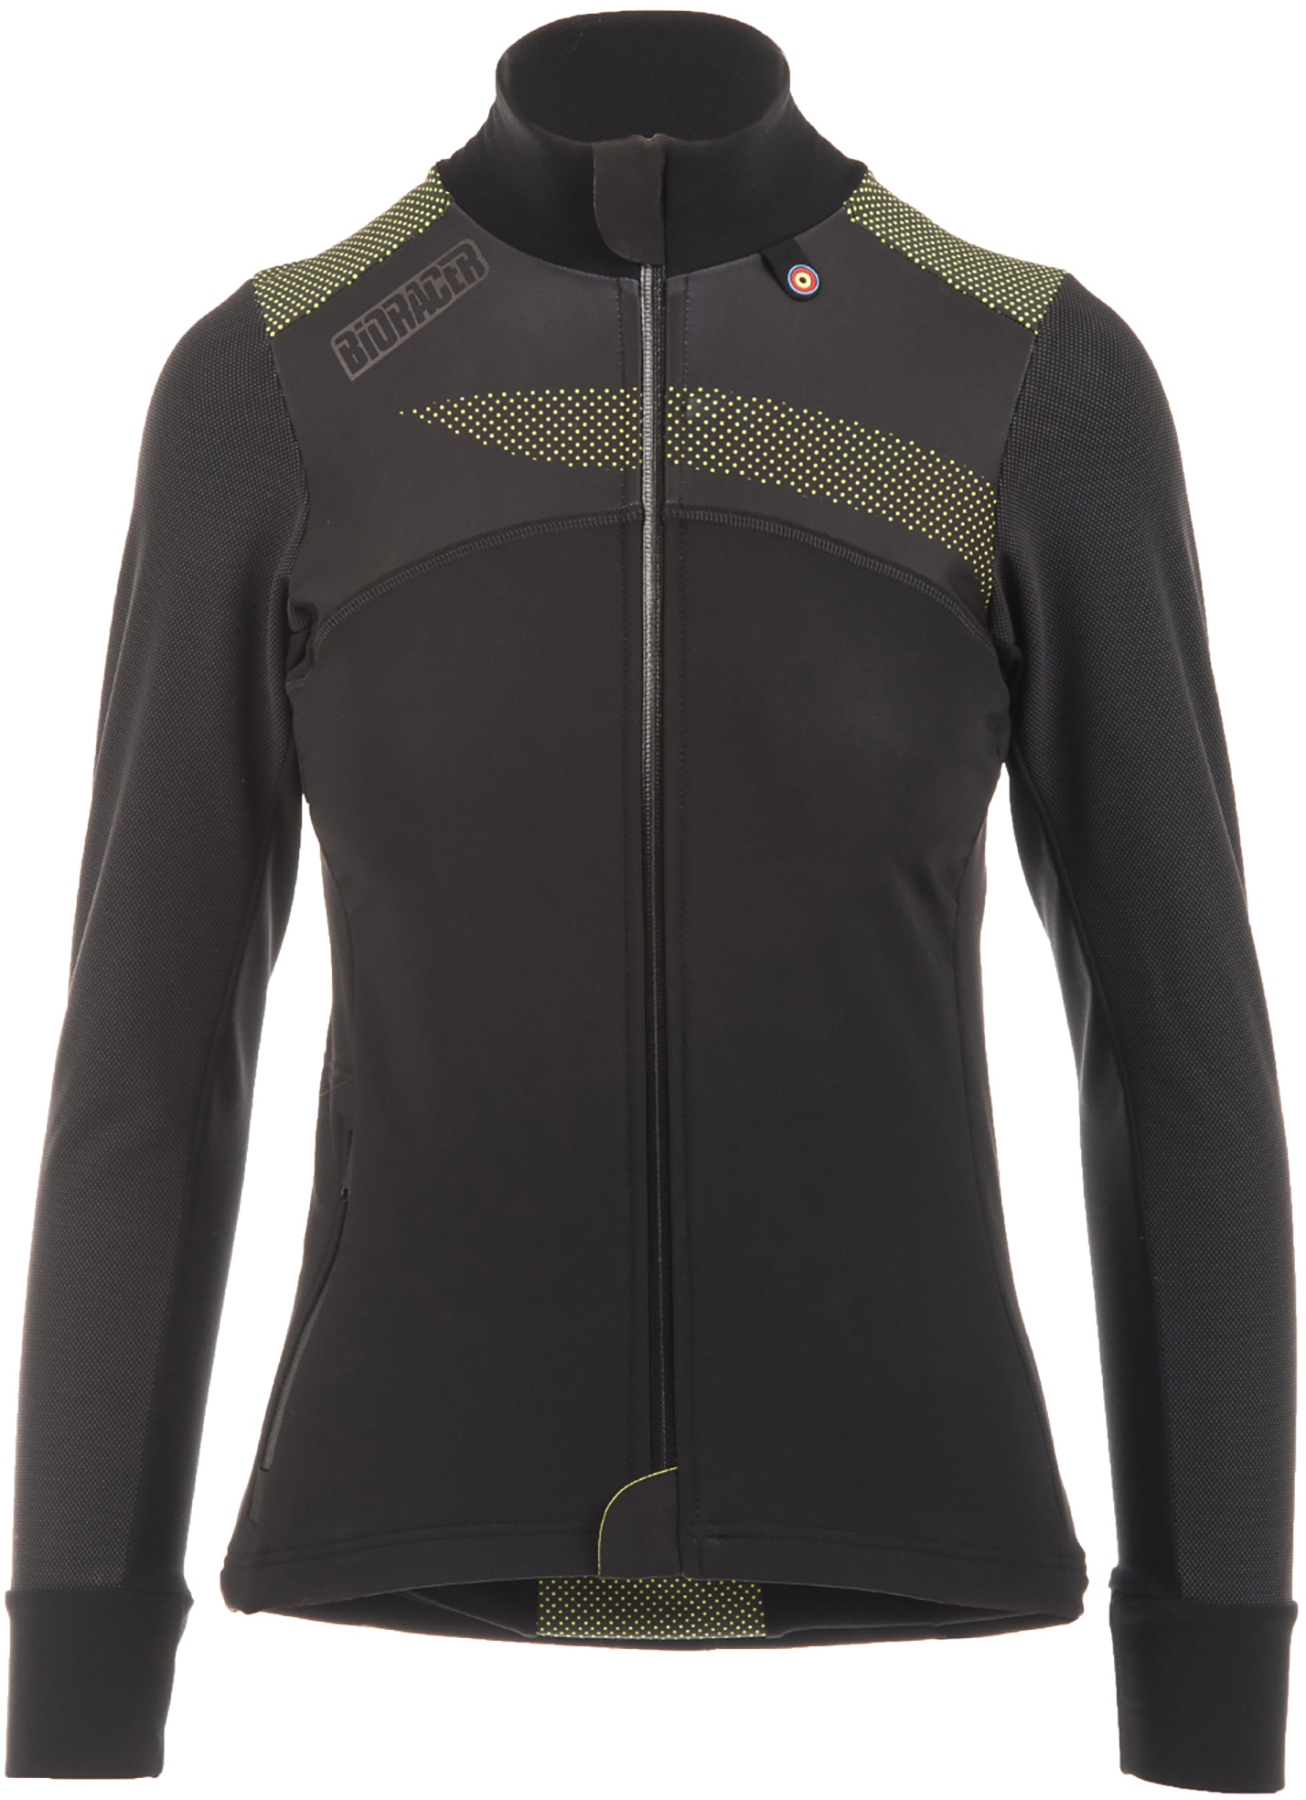 Bioracer Women's Vesper Tempest Protect Winter Jacket (Beav | Jackets